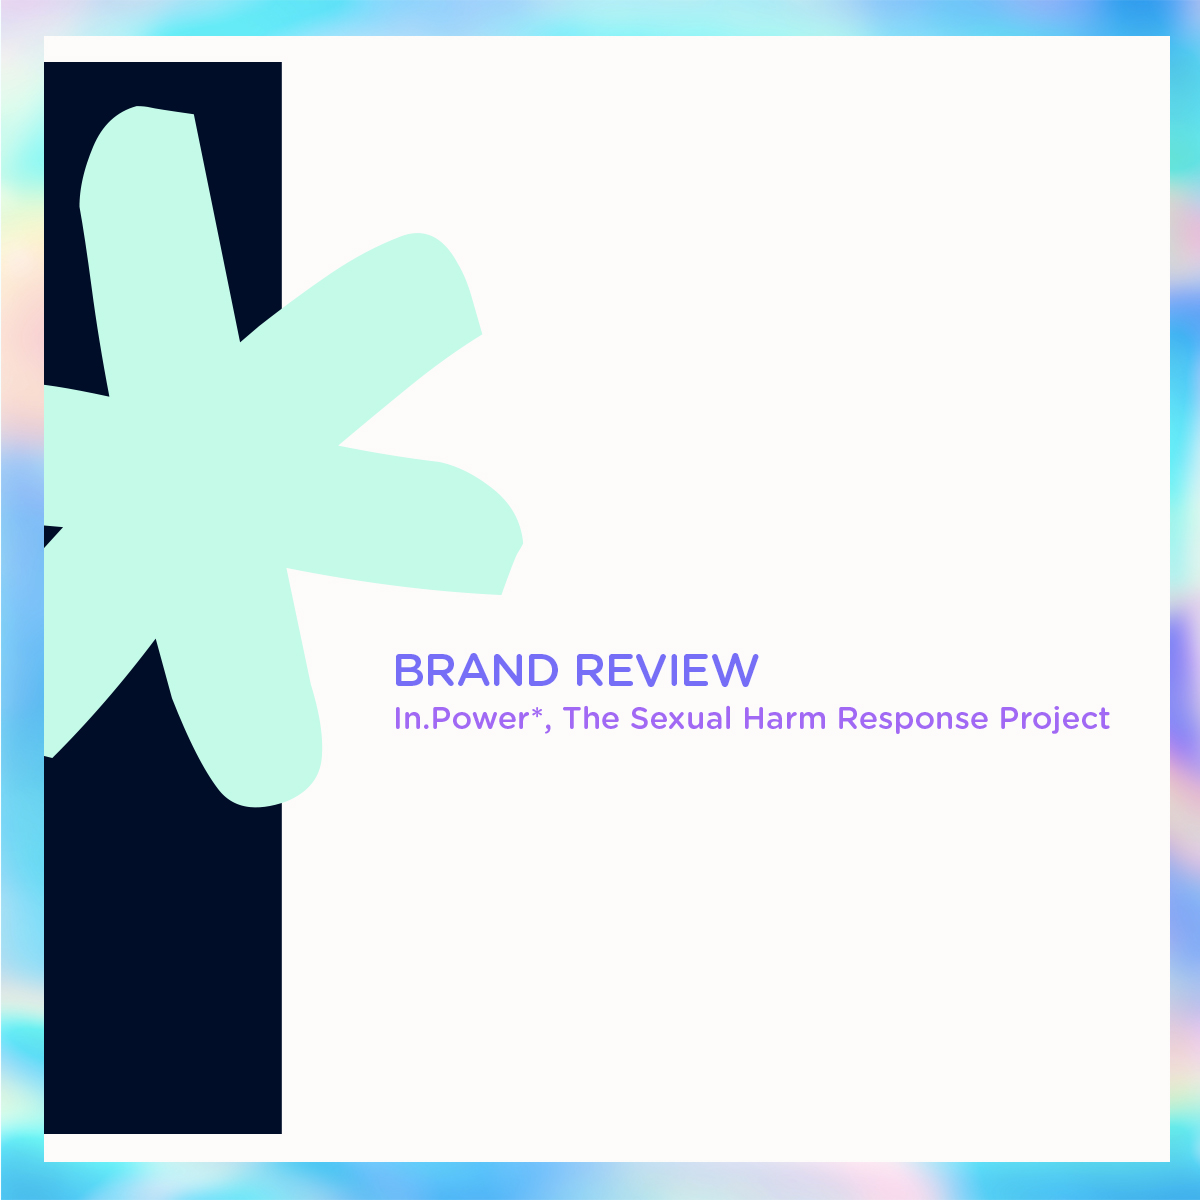 brandreview.jpg